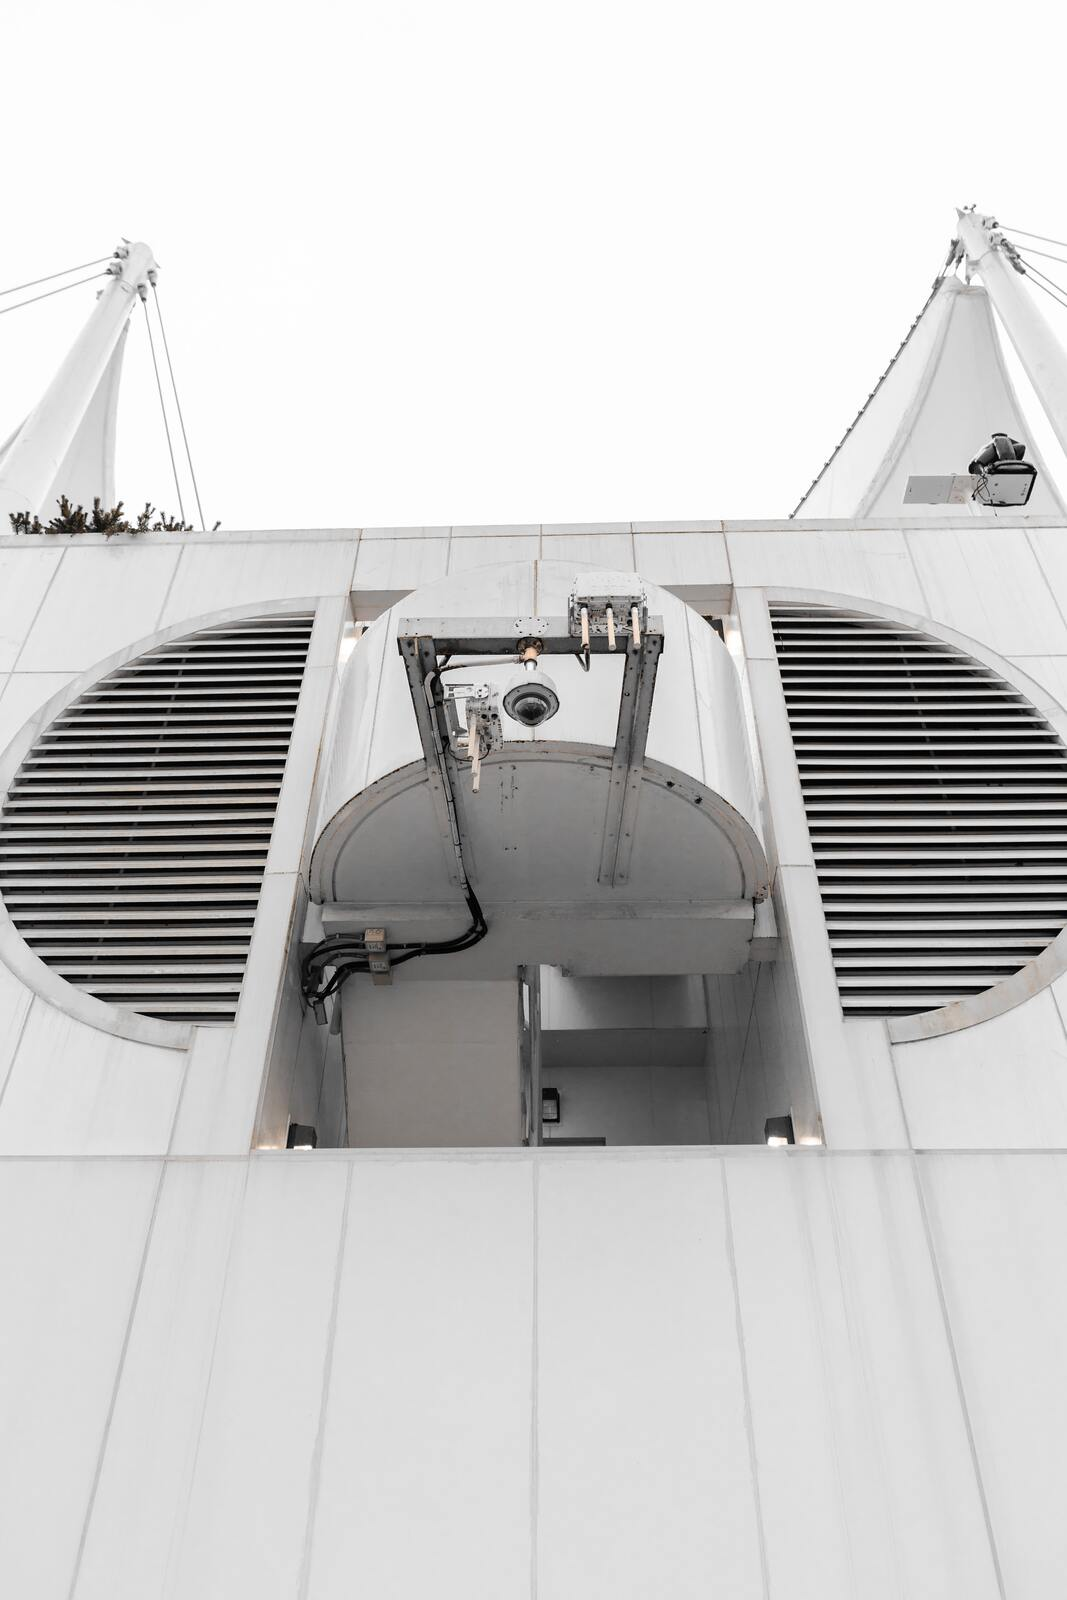 Improving Indoor Air Quality: The Future of Air Purification Tech